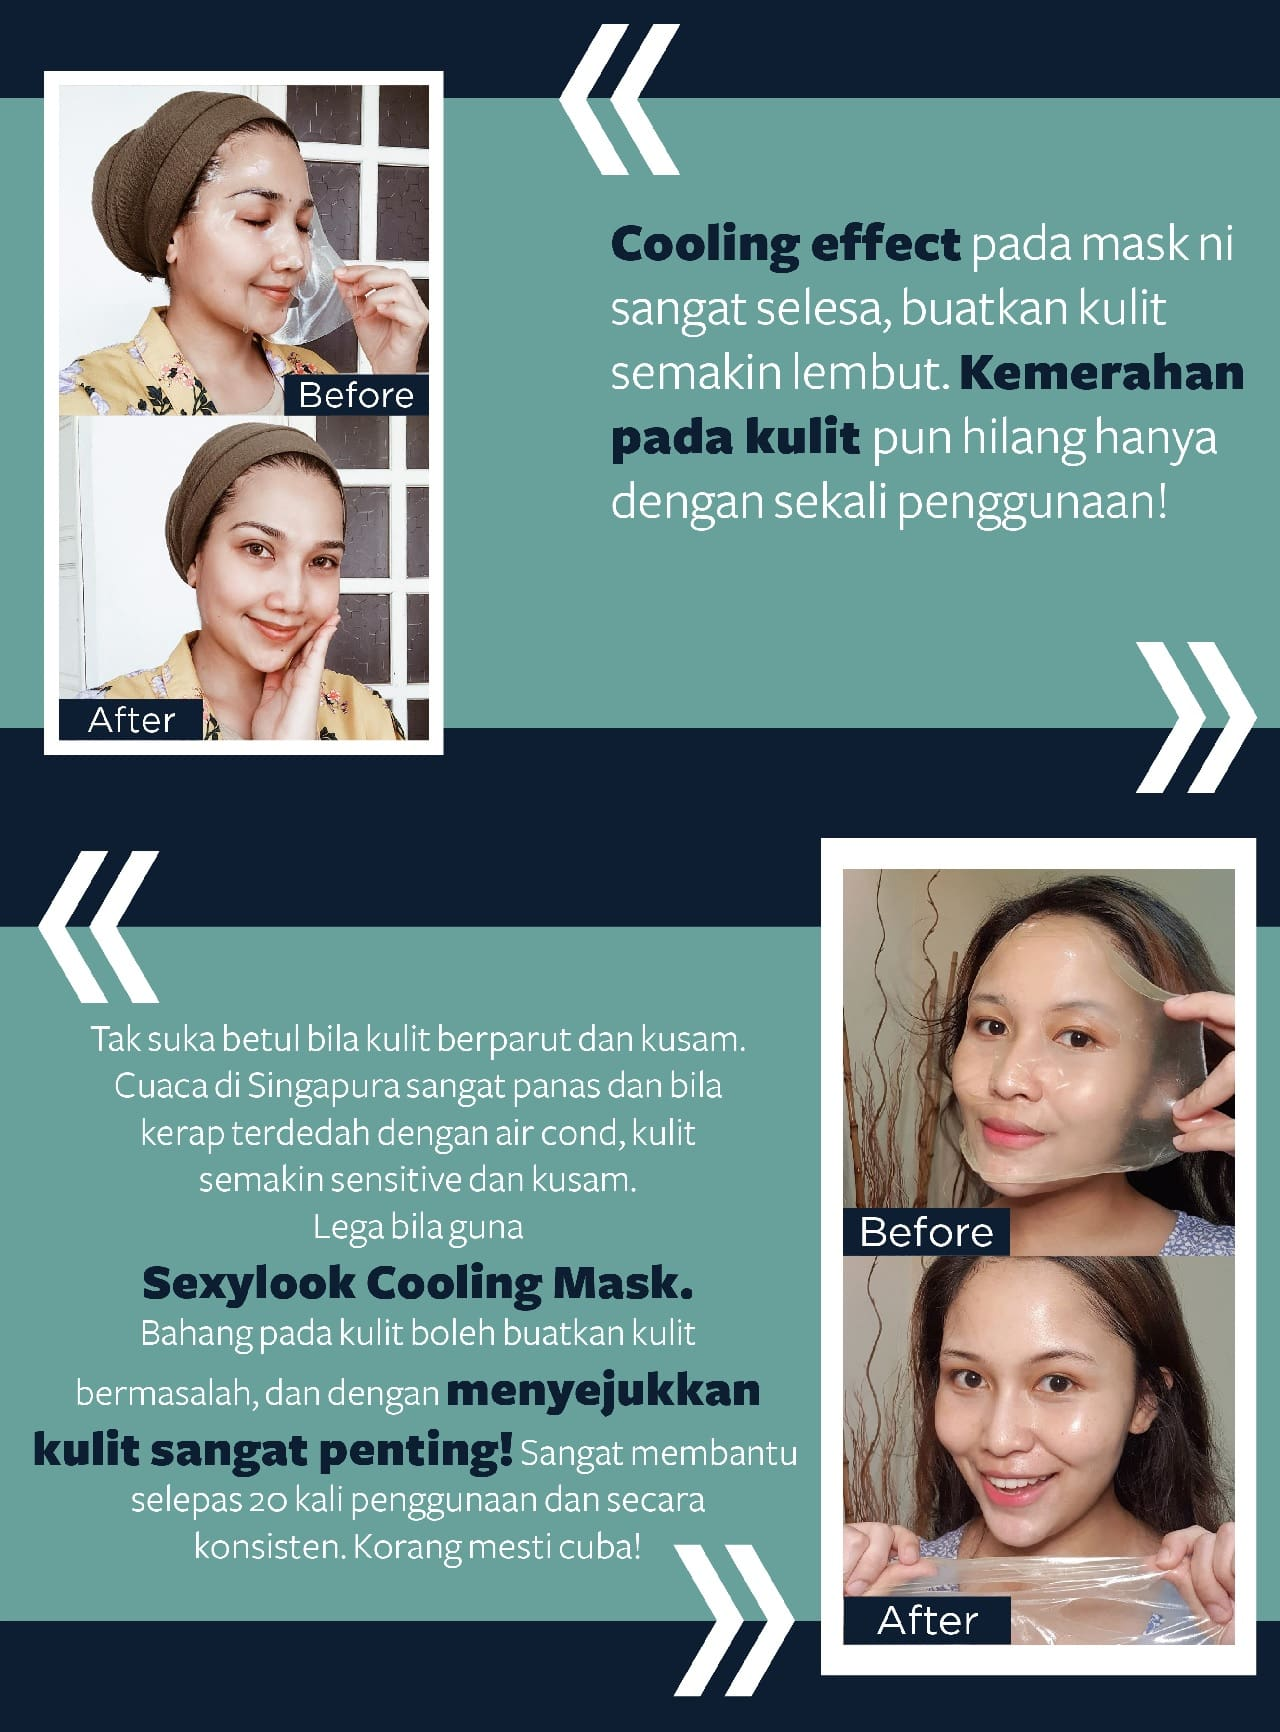 Sexylook Review 02 -1